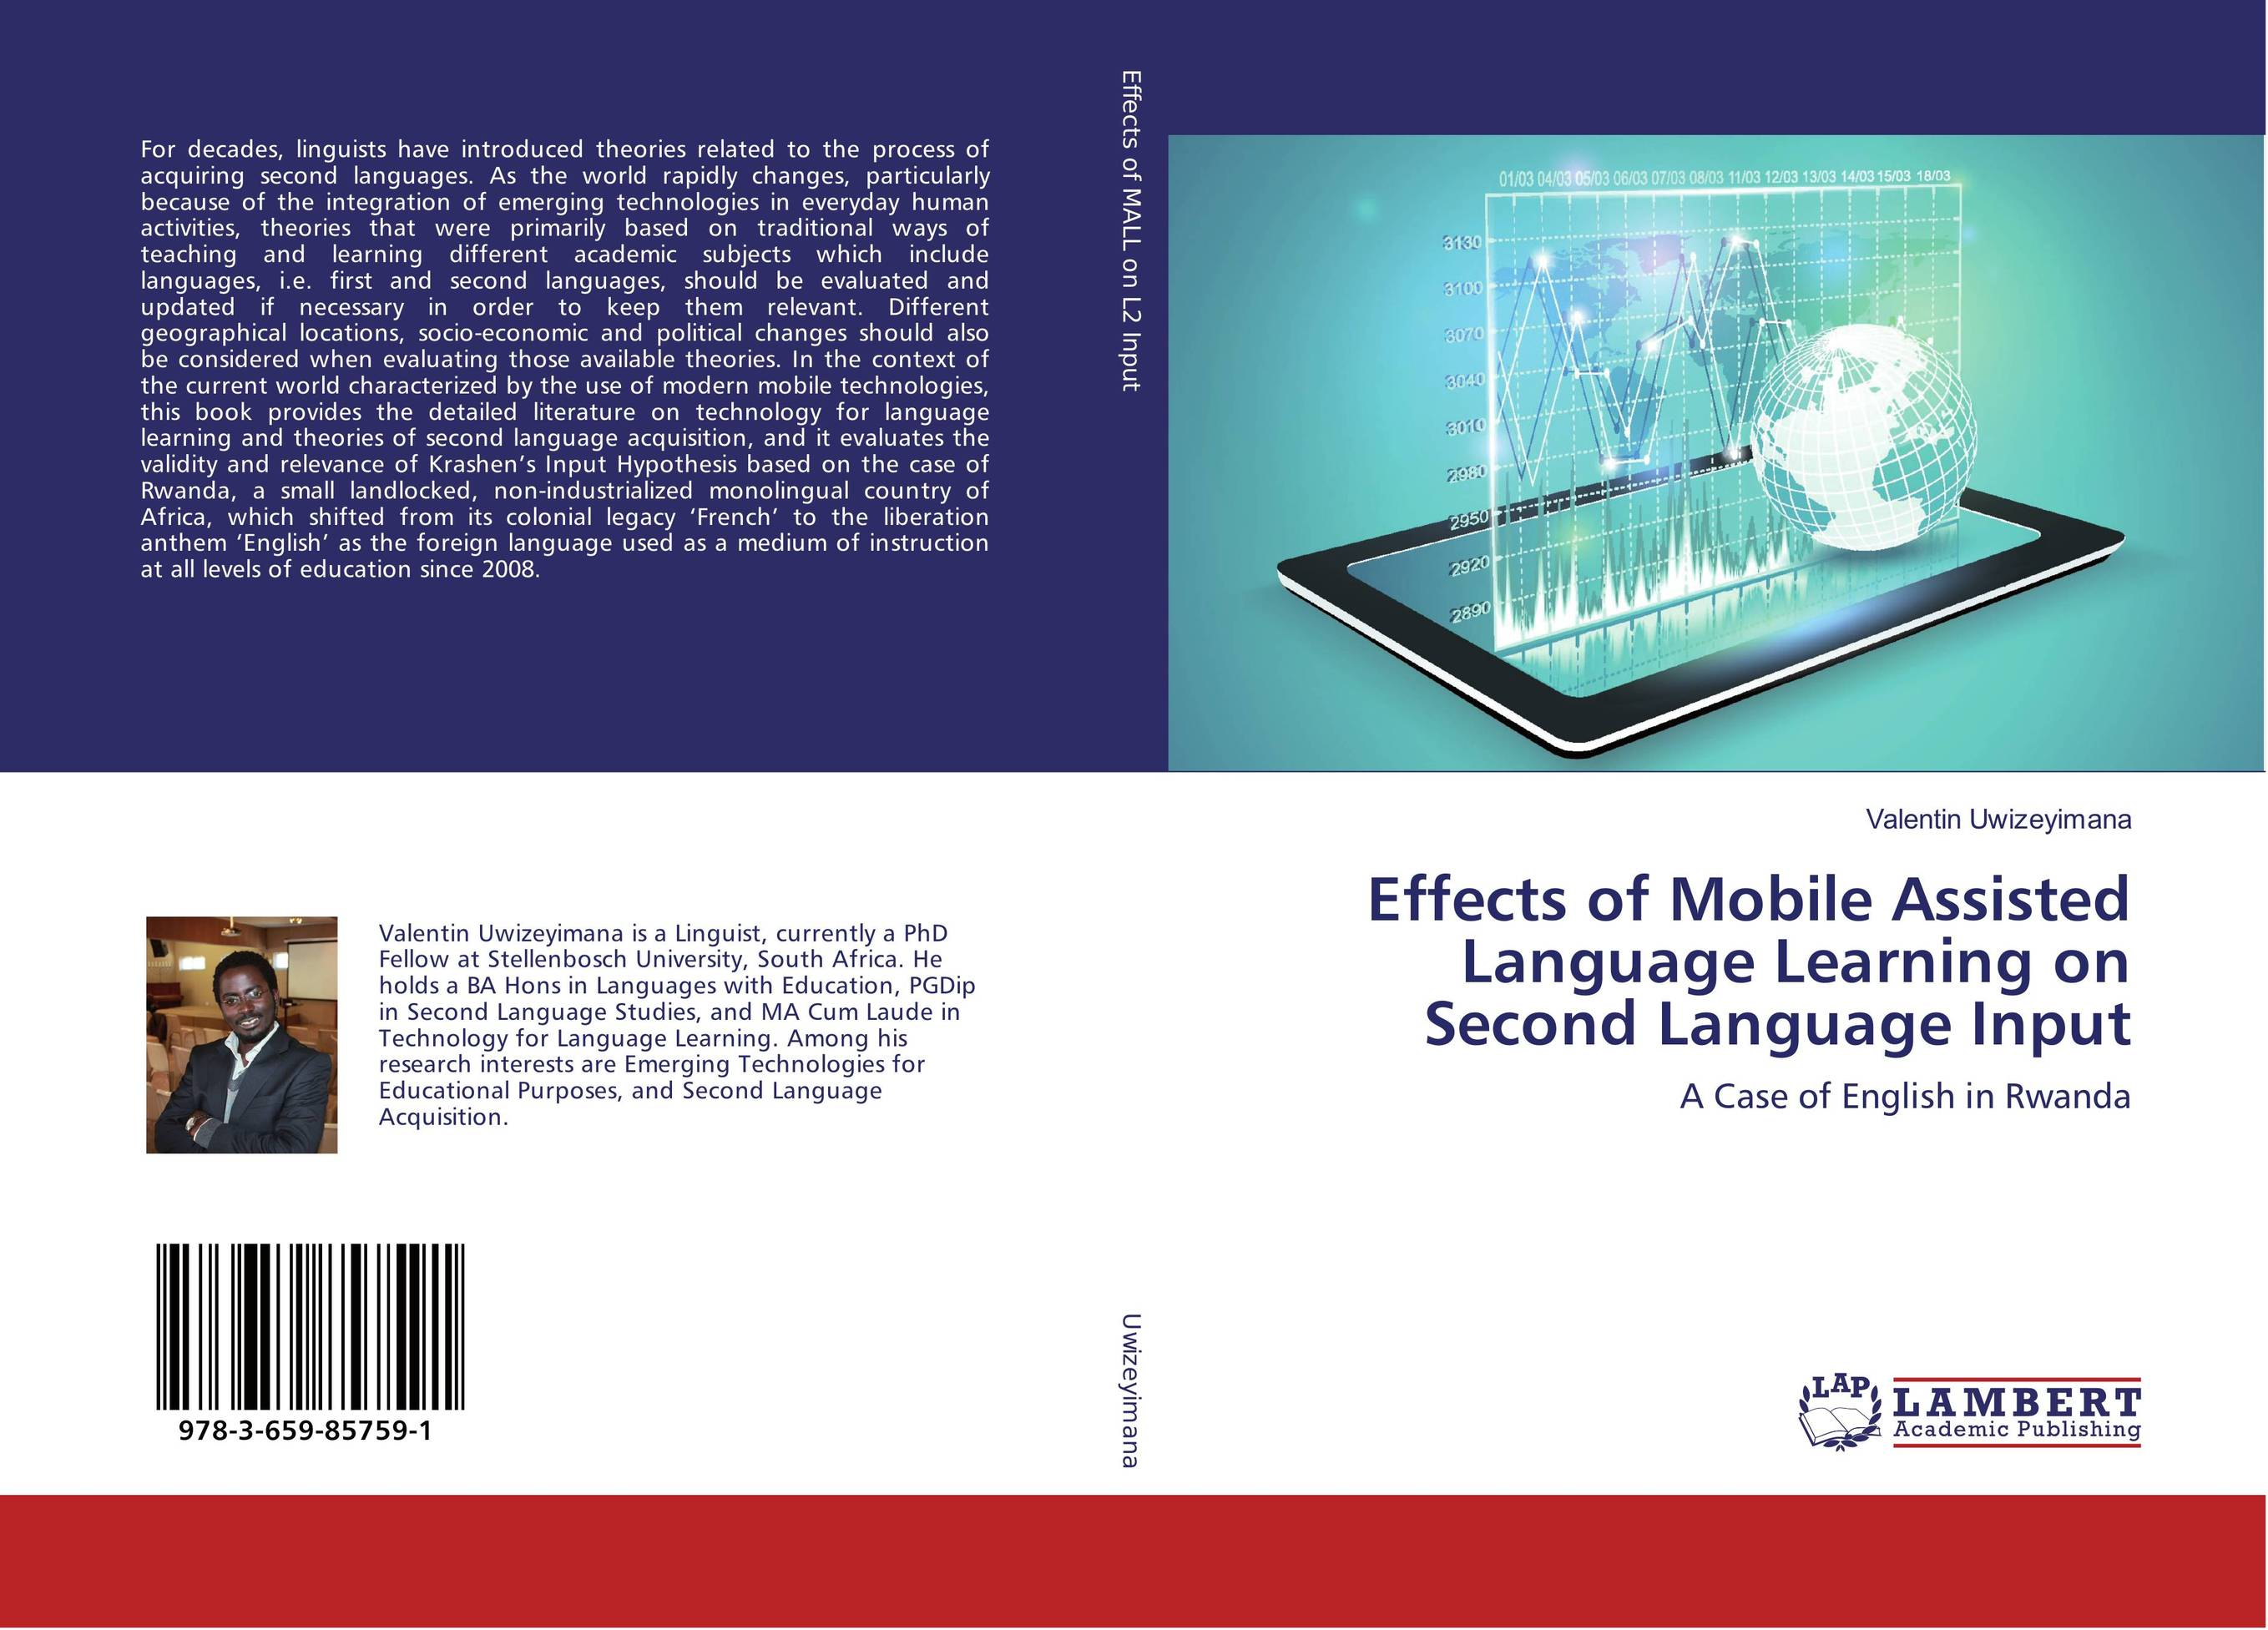 Effects of Mobile Assisted Language Learning on Second Language Input ghada abdelhady new des based on elliptic curve